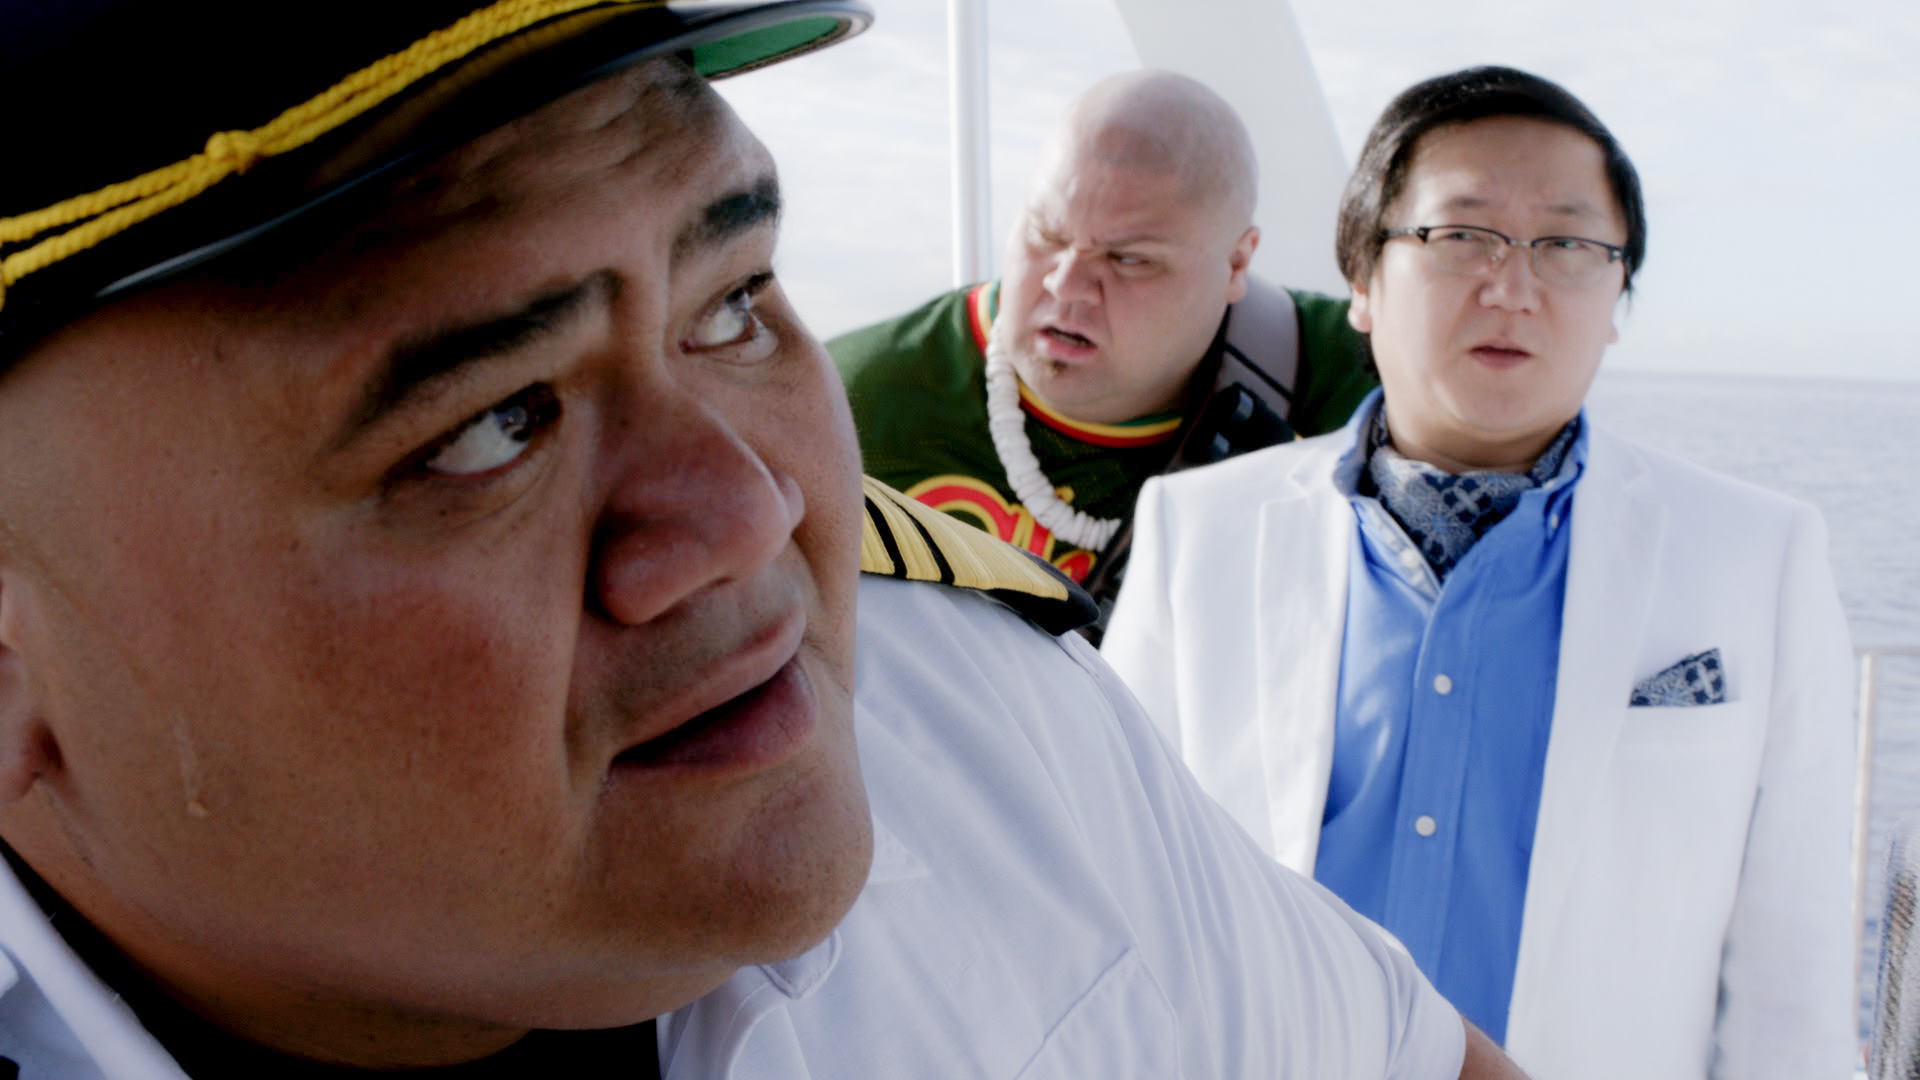 Taylor Wily as Kamekona, Masi Oka as Dr. Max Bergman, and Shawn Mokuahi Garnett as Flippa/Shawn Tupuola